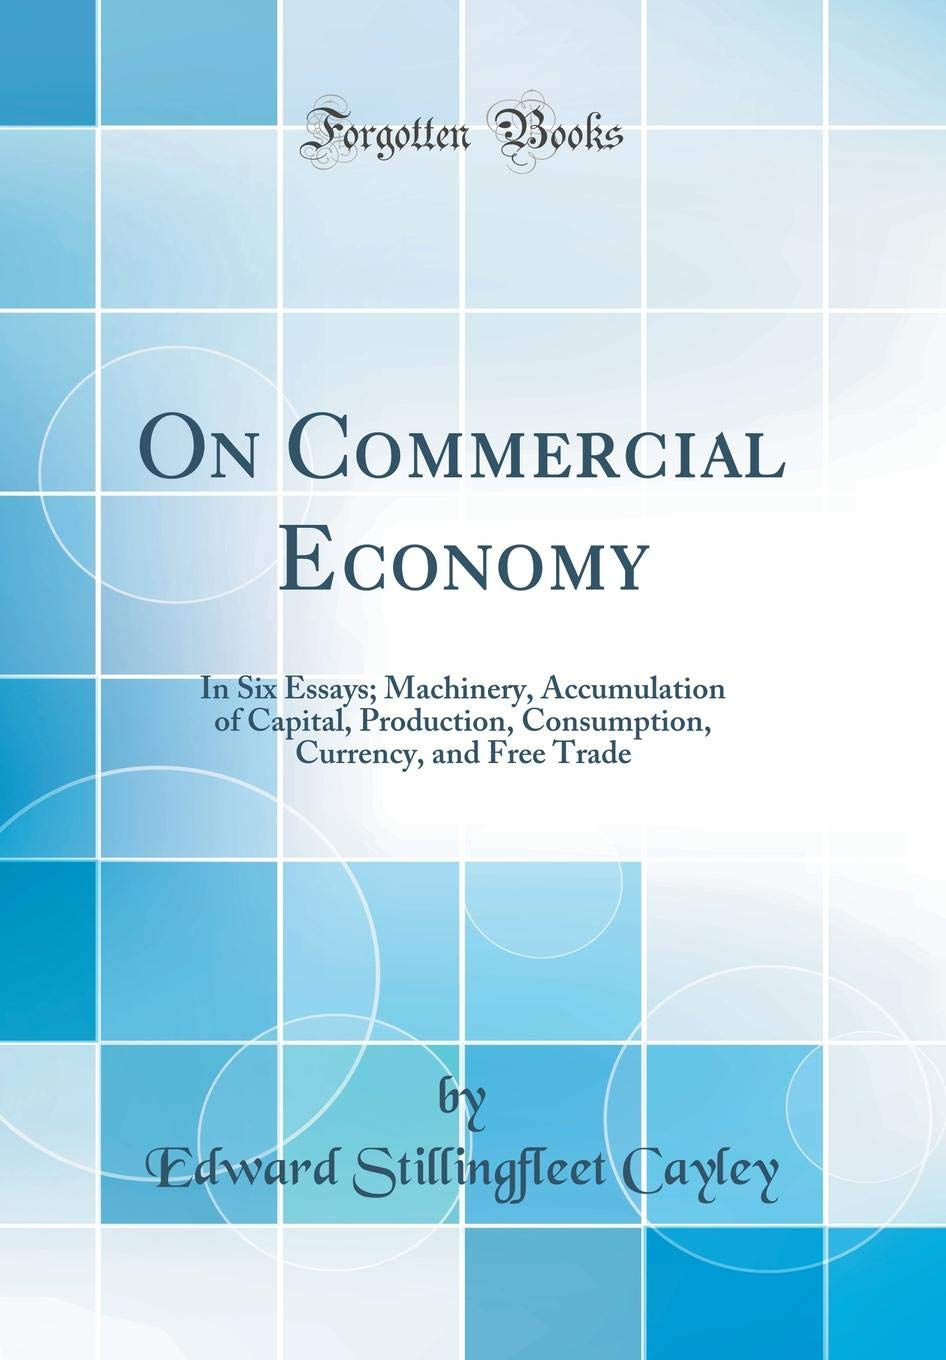 Download On Commercial Economy: In Six Essays; Machinery, Accumulation of Capital, Production, Consumption, Currency, and Free Trade (Classic Reprint) PDF ePub ebook